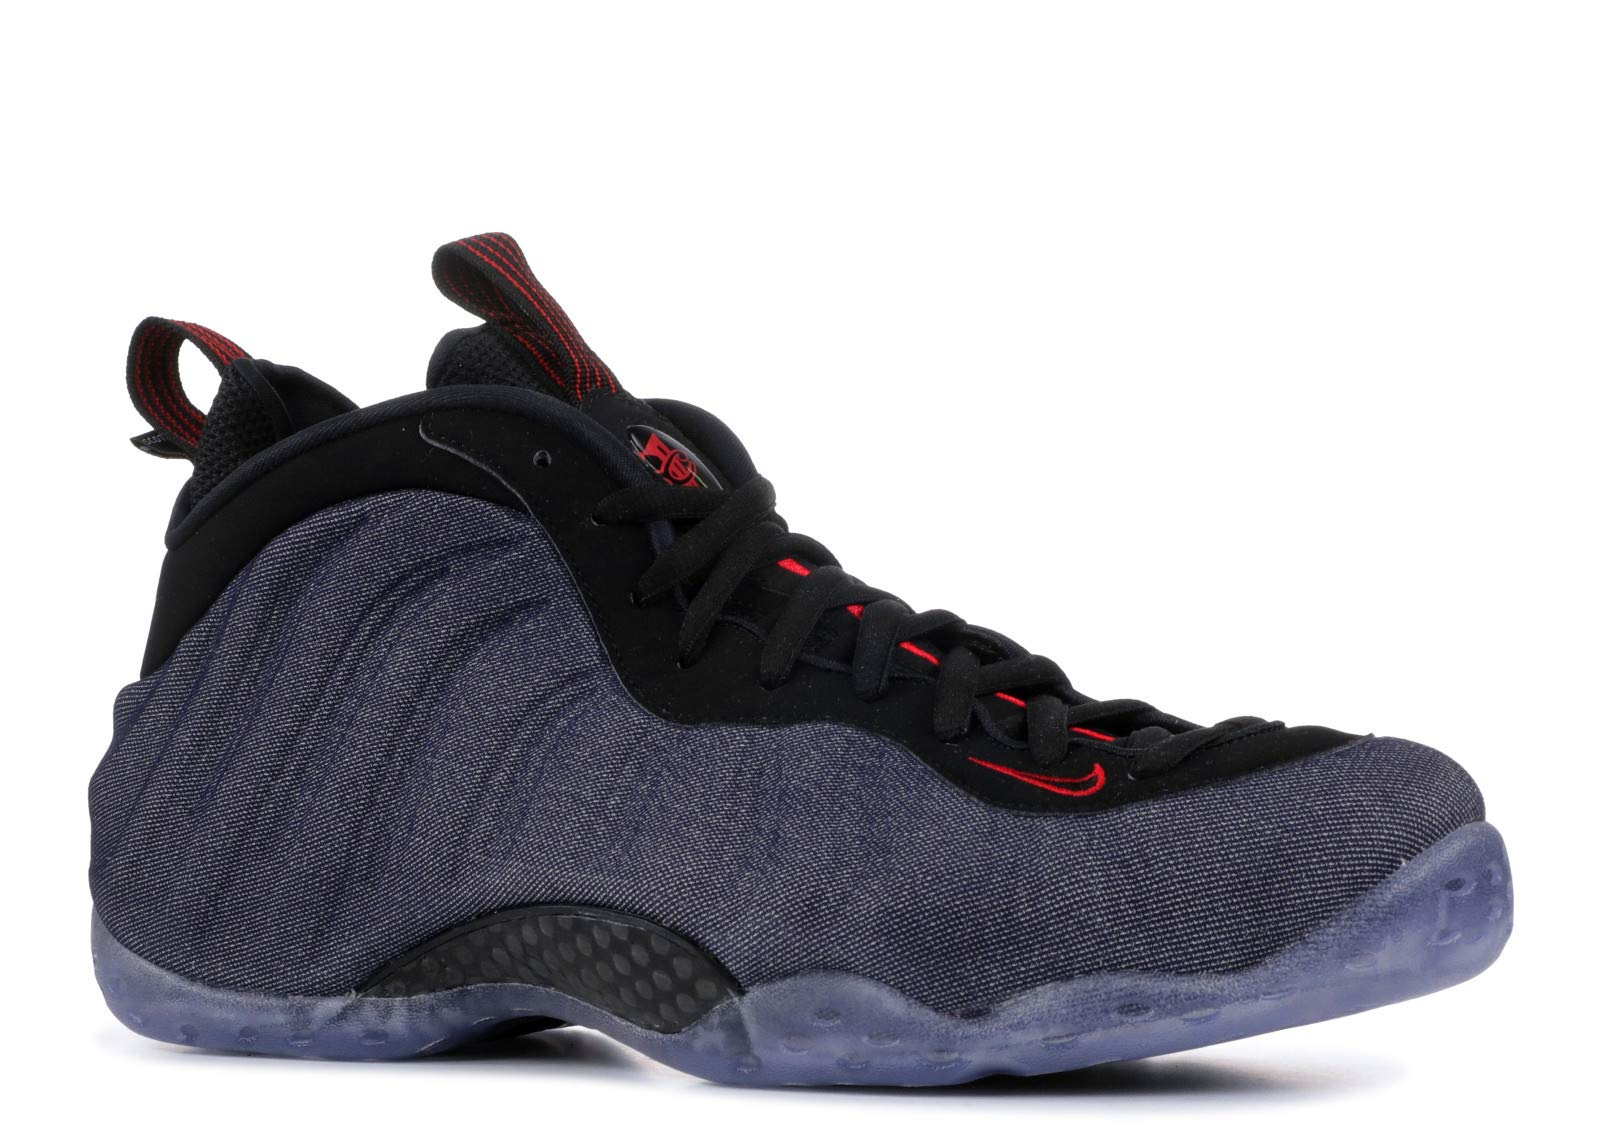 uk availability 16a24 7392d Nike - Air Foamposite One - 314996404 - Color: Black-Navy Blue - Size: 11.5